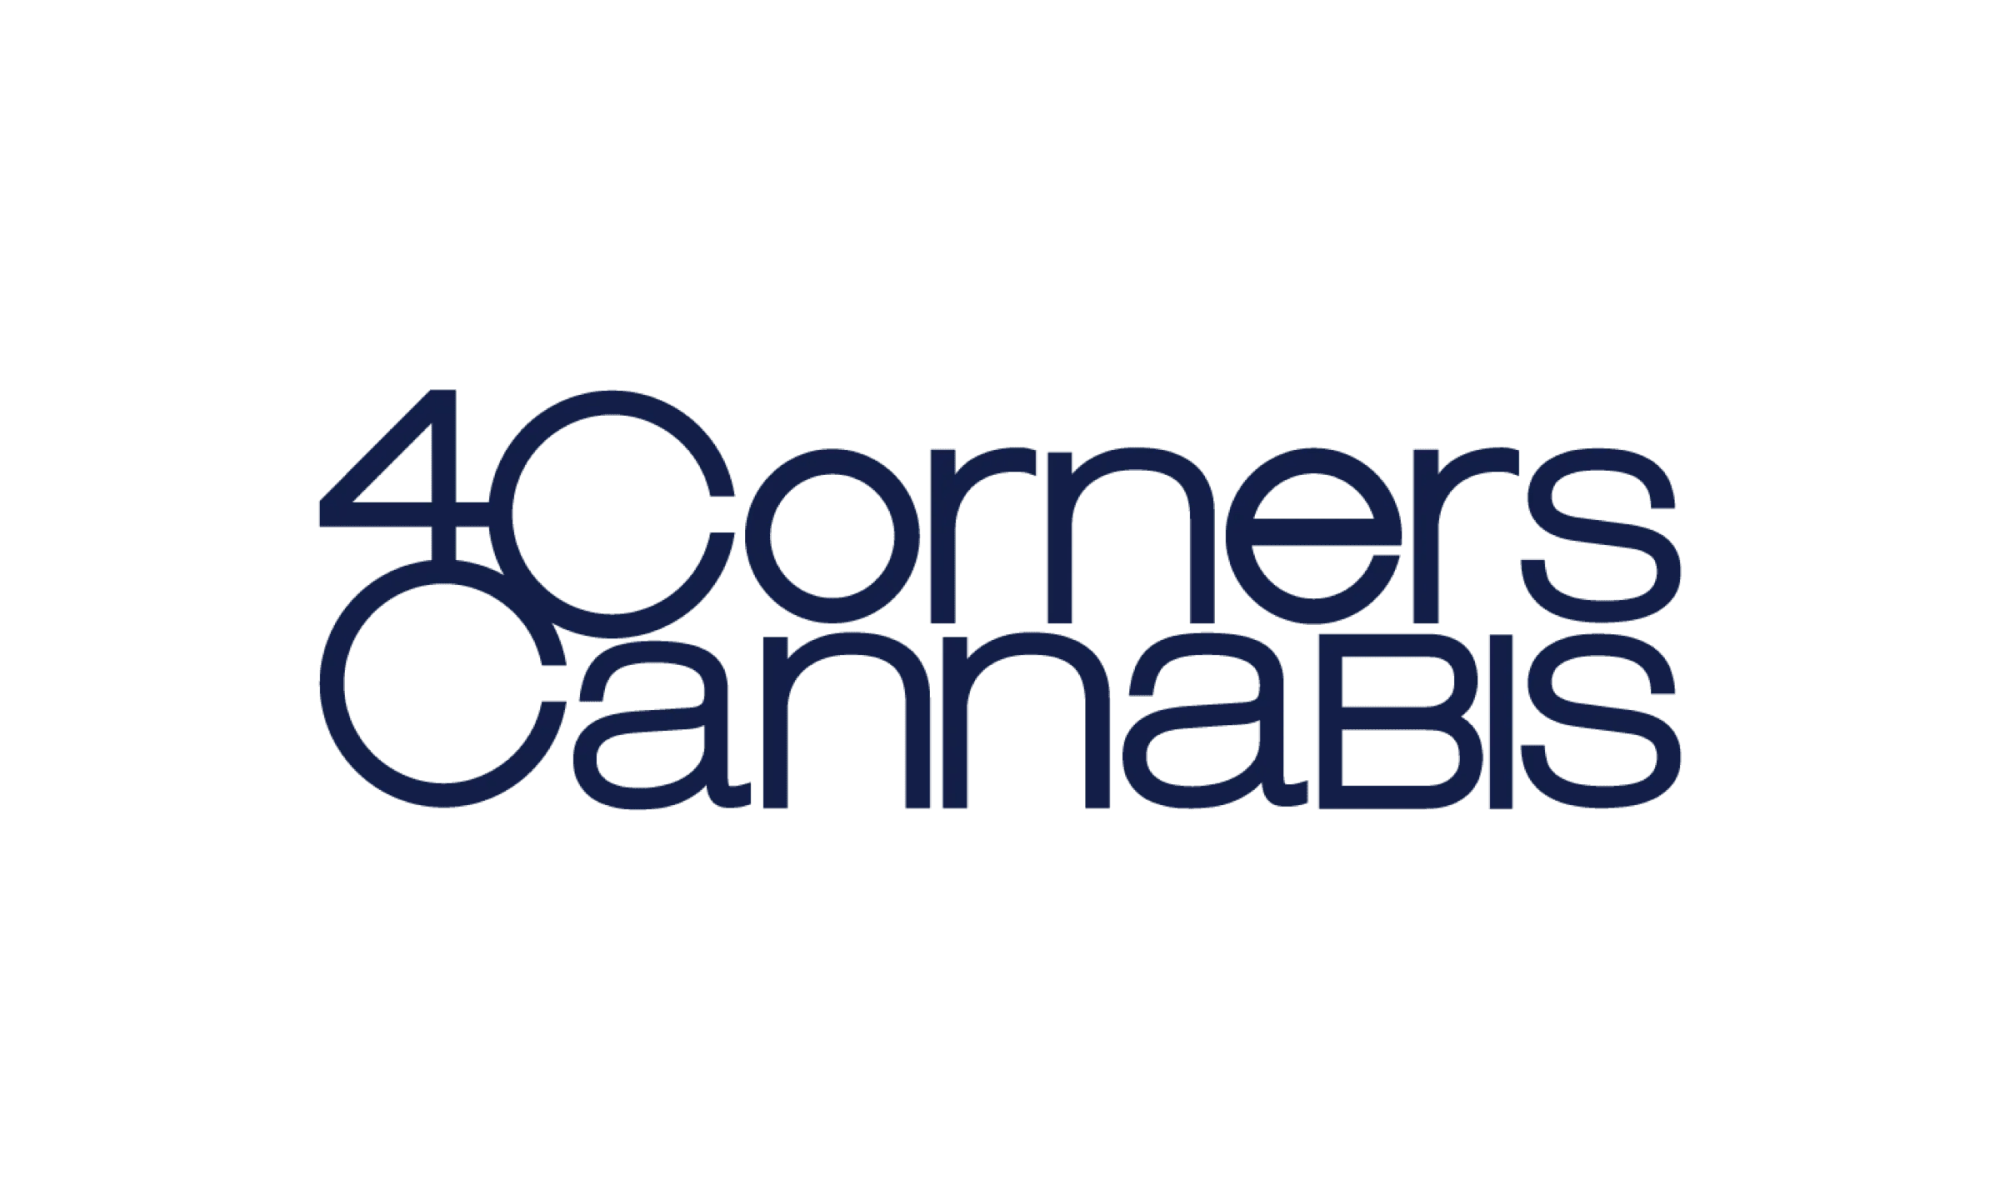 4 Corners Cannabis, 4 Corners cbd, 4 Corners Cannabis review